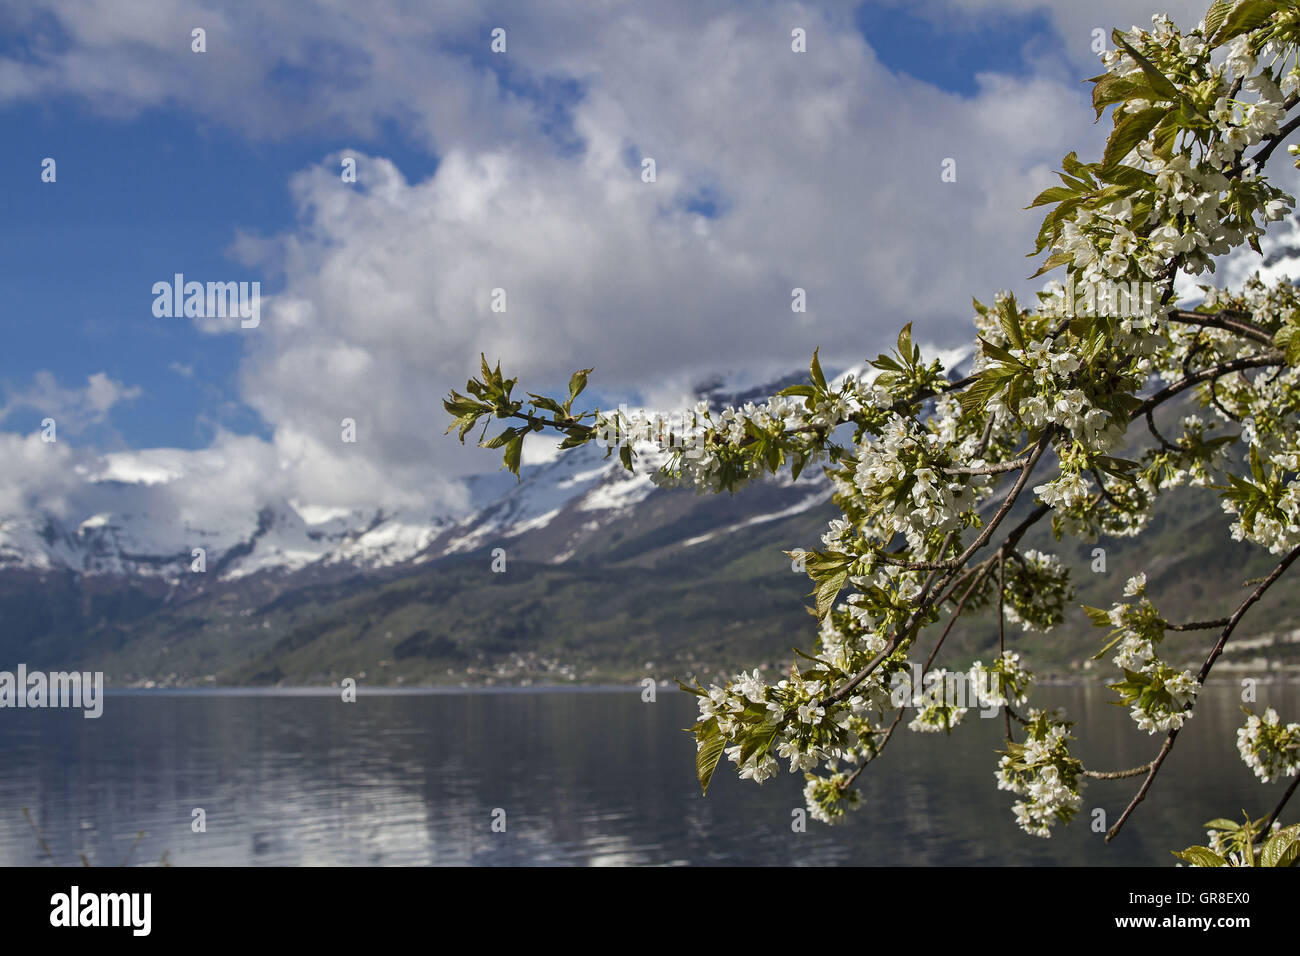 Fruit Tree Blossom Lofthus In Norway - Stock Image